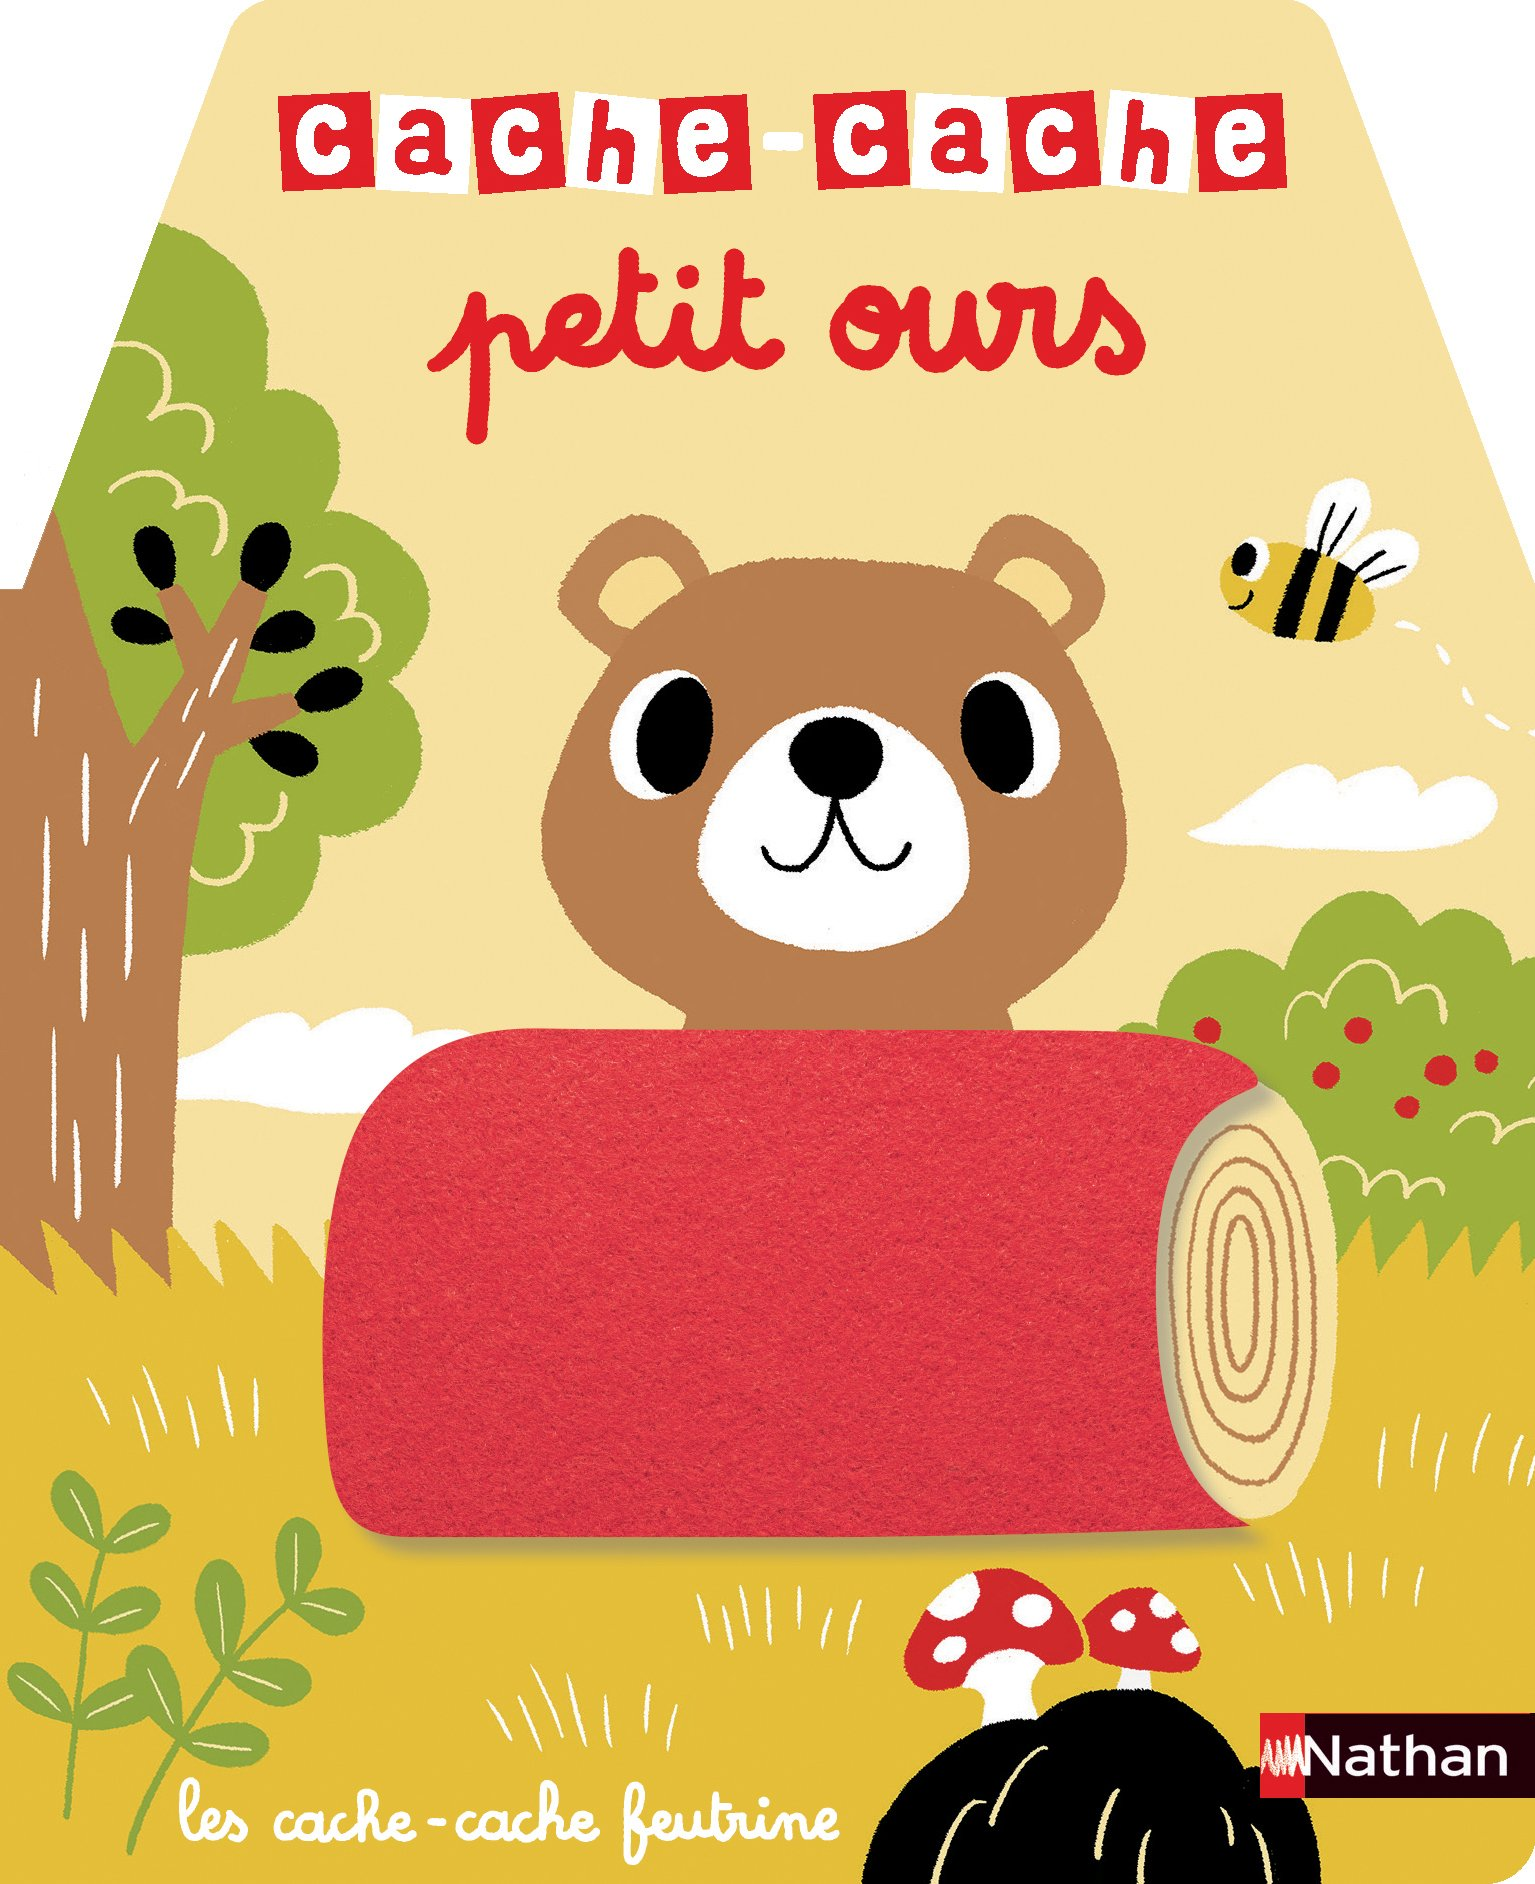 https://www.amazon.fr/Cache-cache-petit-ours-Livre-mati%C3%A8re/dp/209257986X/ref=as_li_ss_il?s=books&ie=UTF8&qid=1517489505&sr=1-1&keywords=les+cache-cache+feutrine&linkCode=li2&tag=michouscrap-21&linkId=32302440e2df50e36178813ed1da809e